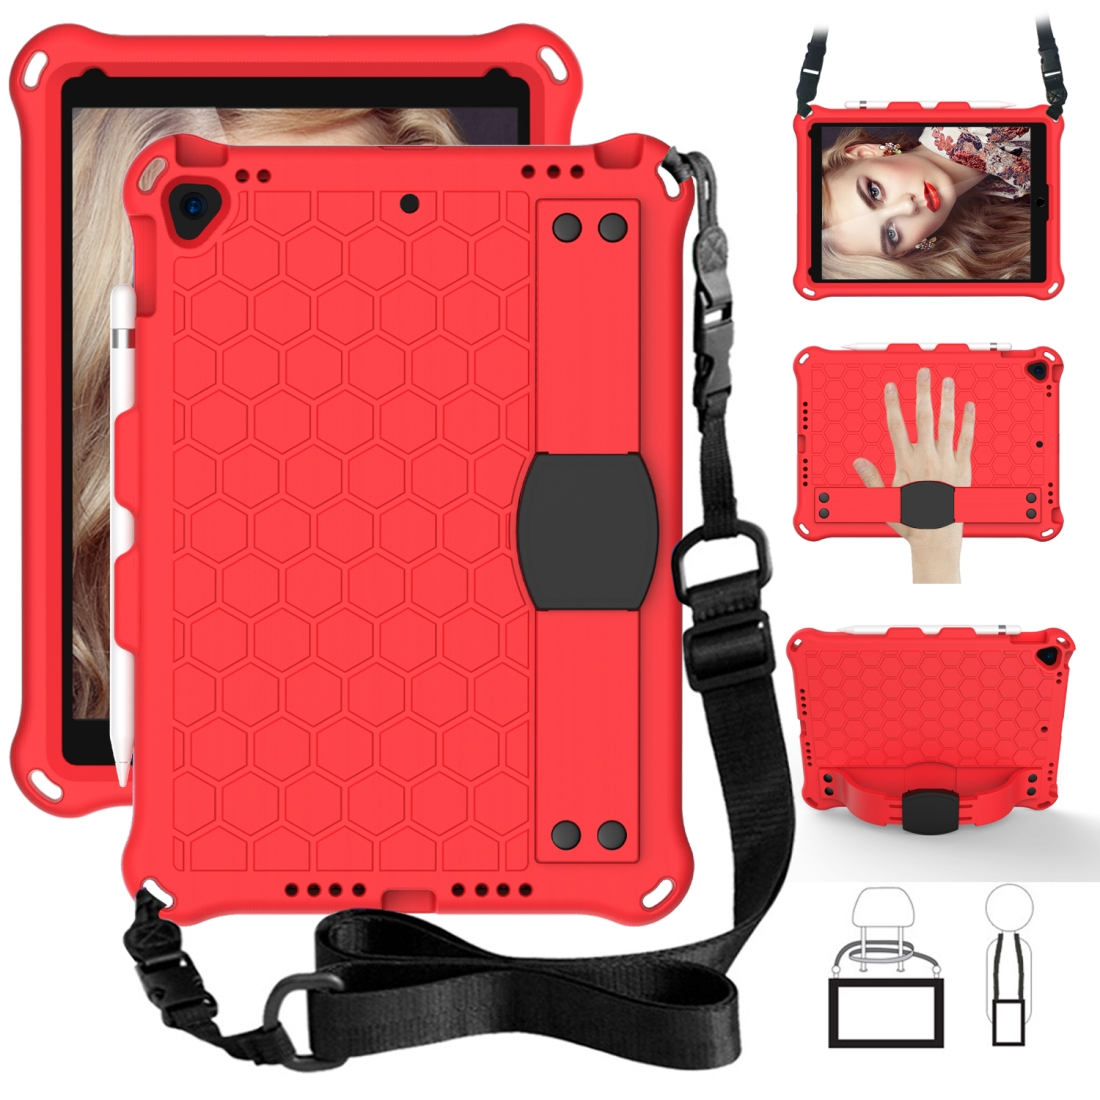 iPad Air 2 Case (2019)/ 10.5 Honeycomb Design Four Corner Protective Shell With Straps (Red/Black )